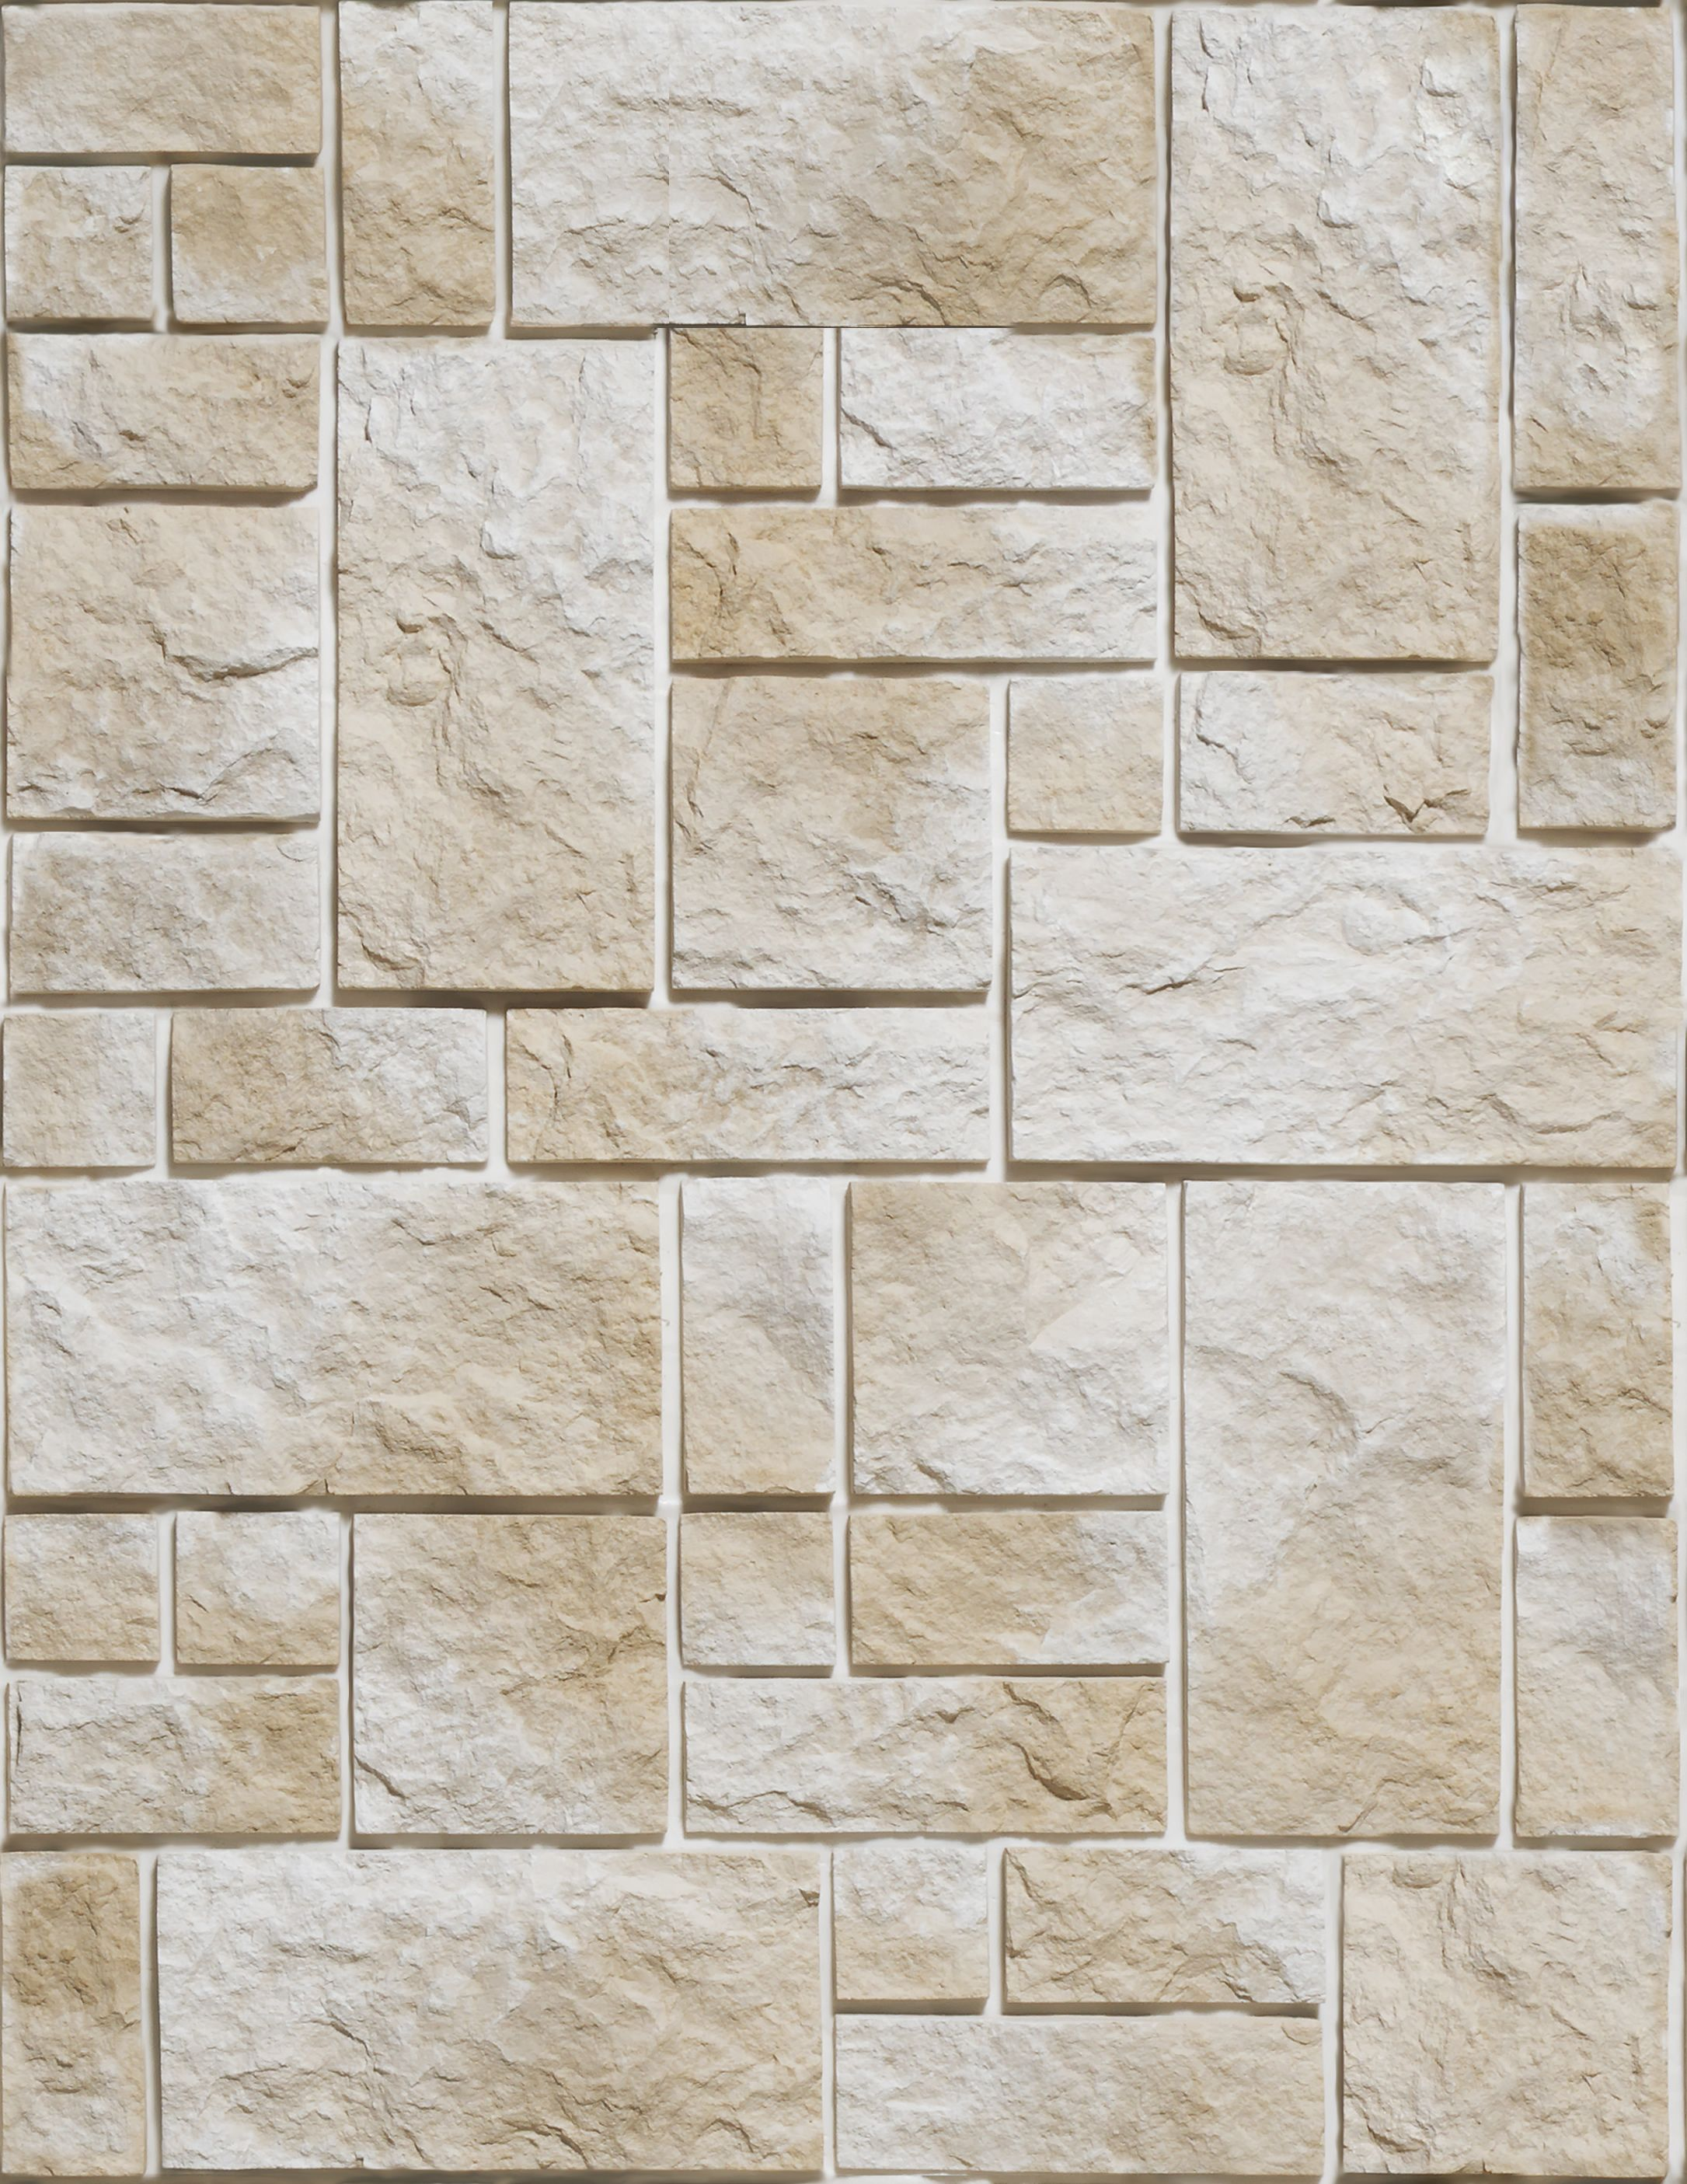 Stone Hewn Tile Texture Wall Download Photo Stone